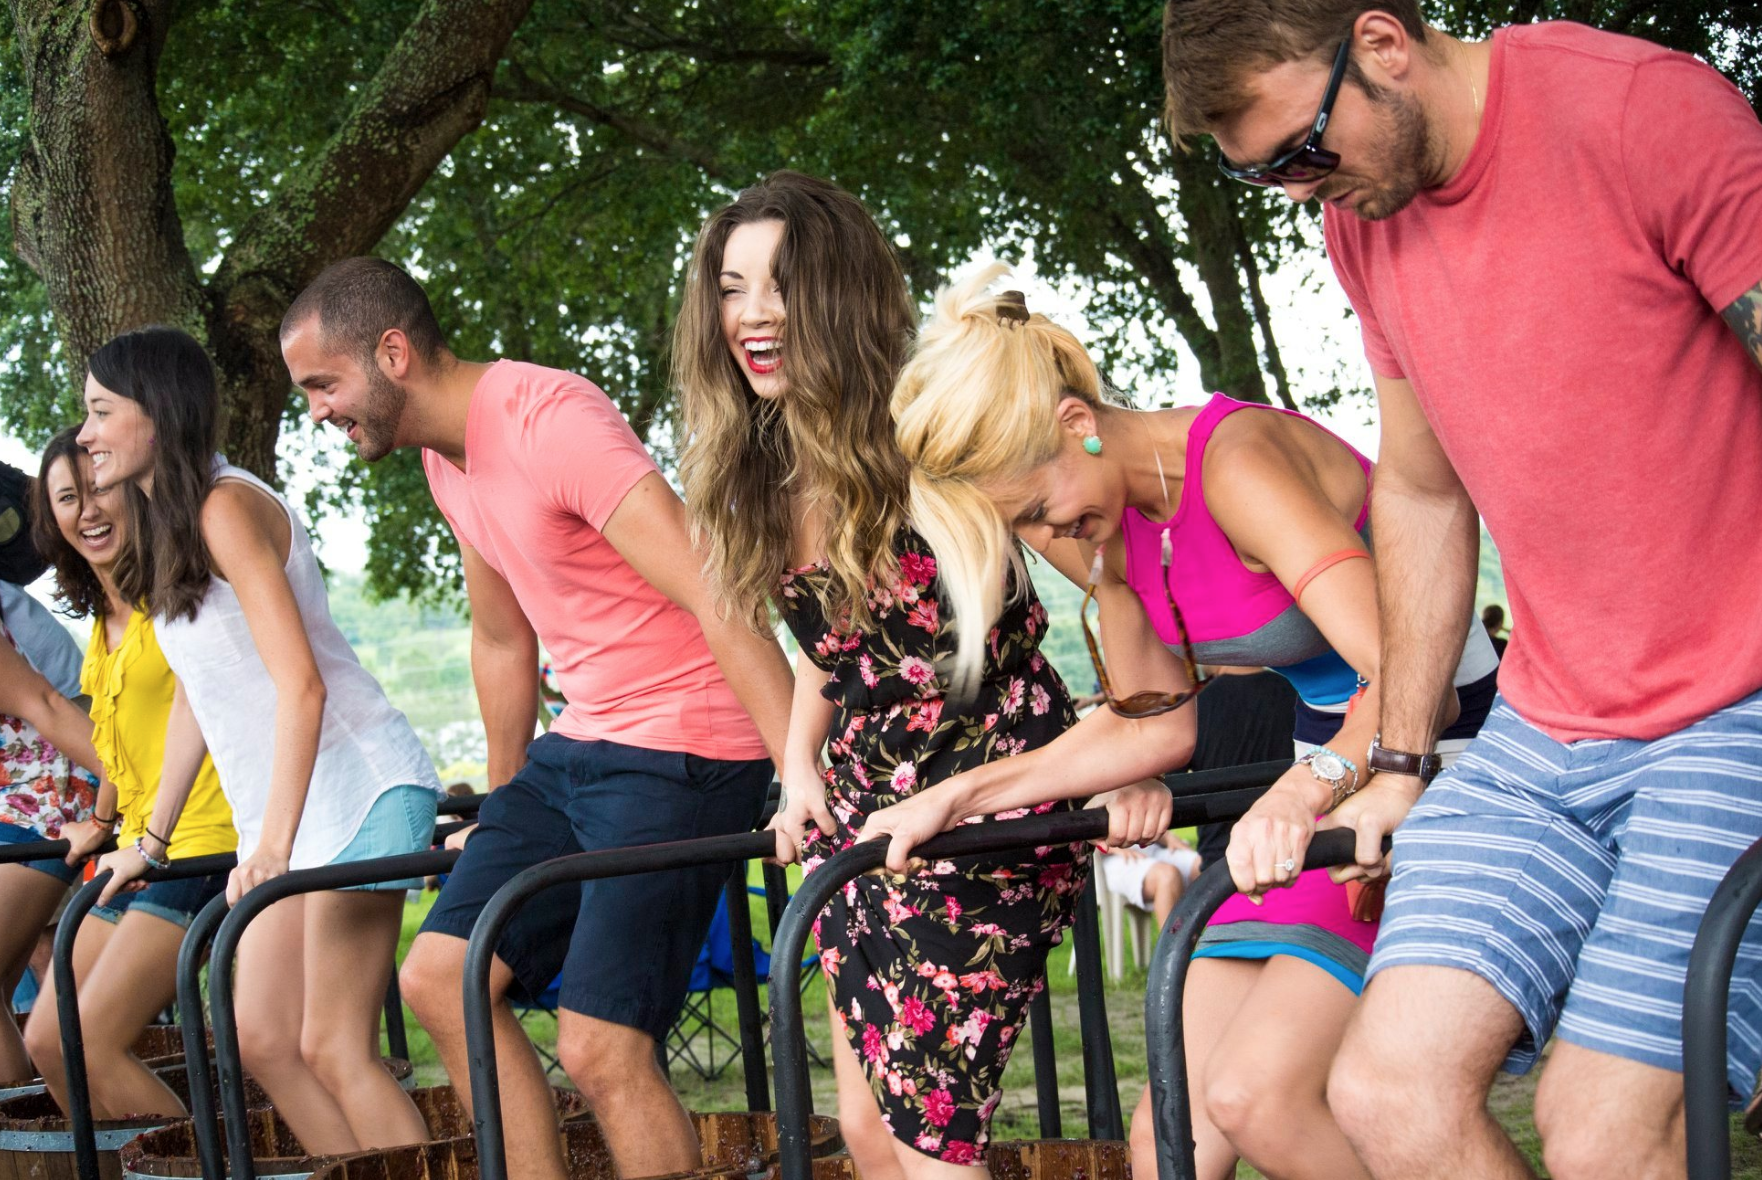 Cheap things to do in Orlando this weekend: Grape Stomp event at Lakeridge Winery.